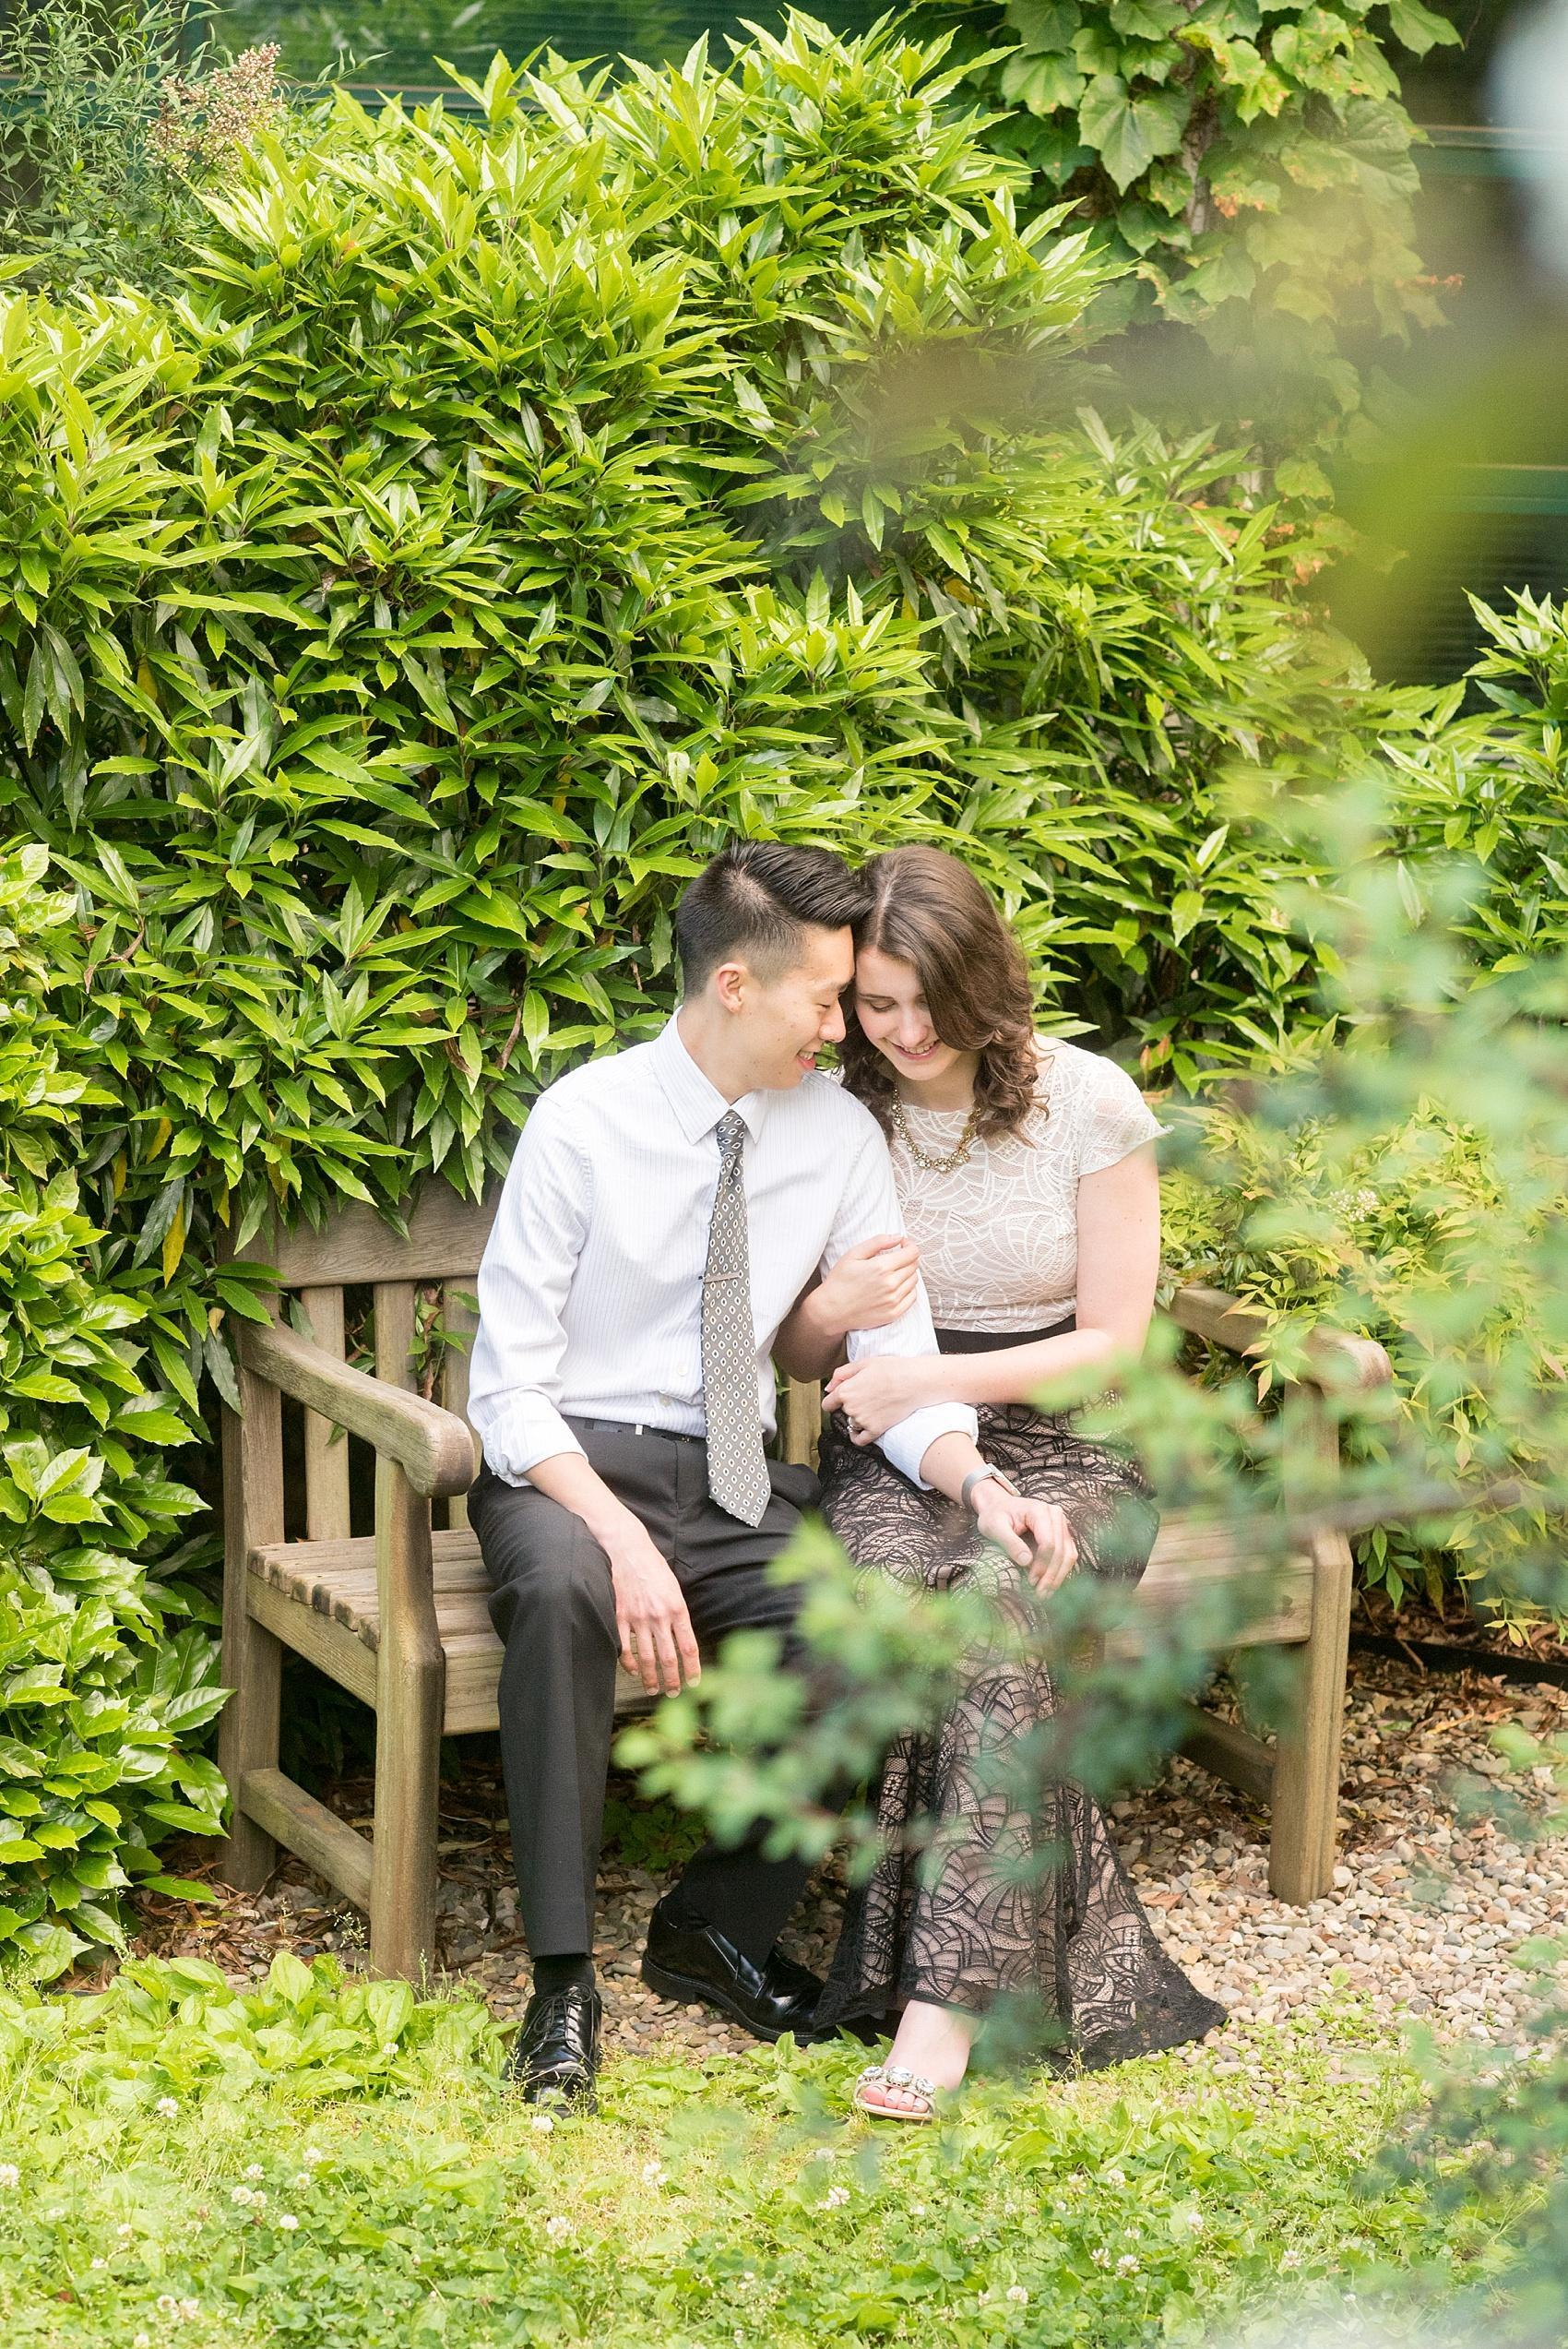 Raleigh North Carolina wedding photographer, Mikkel Paige Photography, photographs an engagement session at JC Raulston Arboretum at NC State campus.